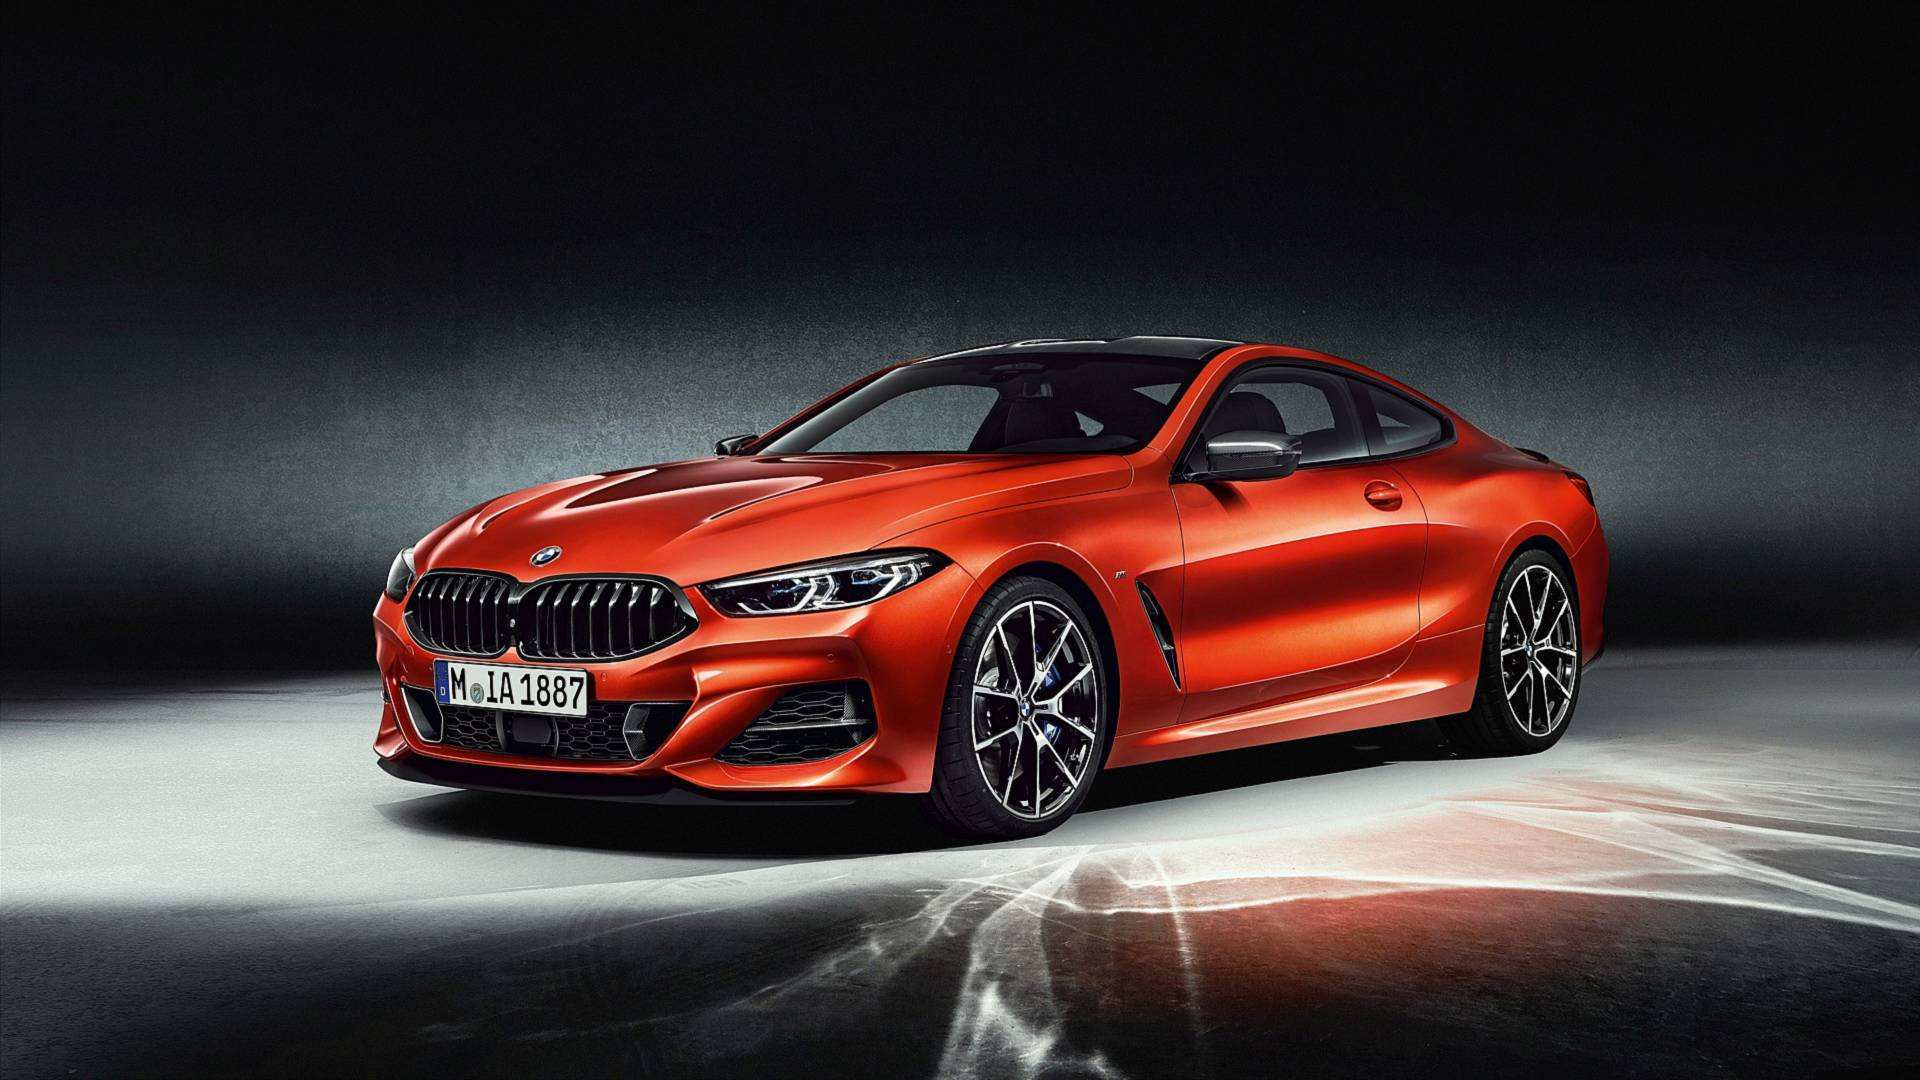 44 A Bmw 8 2019 Price And Release Date